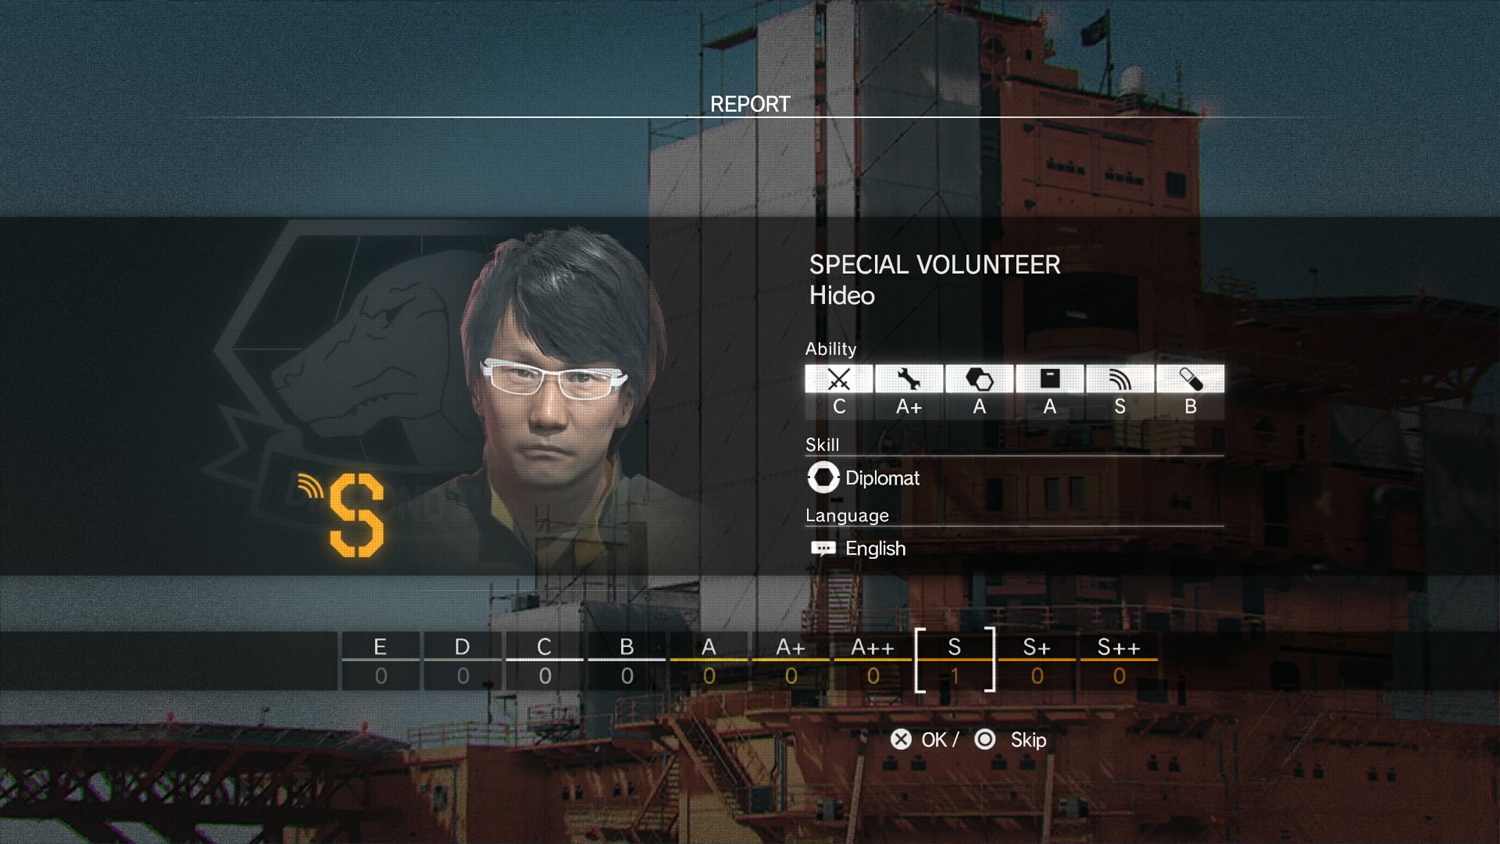 Metal-Gear-Solid-V-The-Phantom-Pain-Hideo-Kojima-Recruited